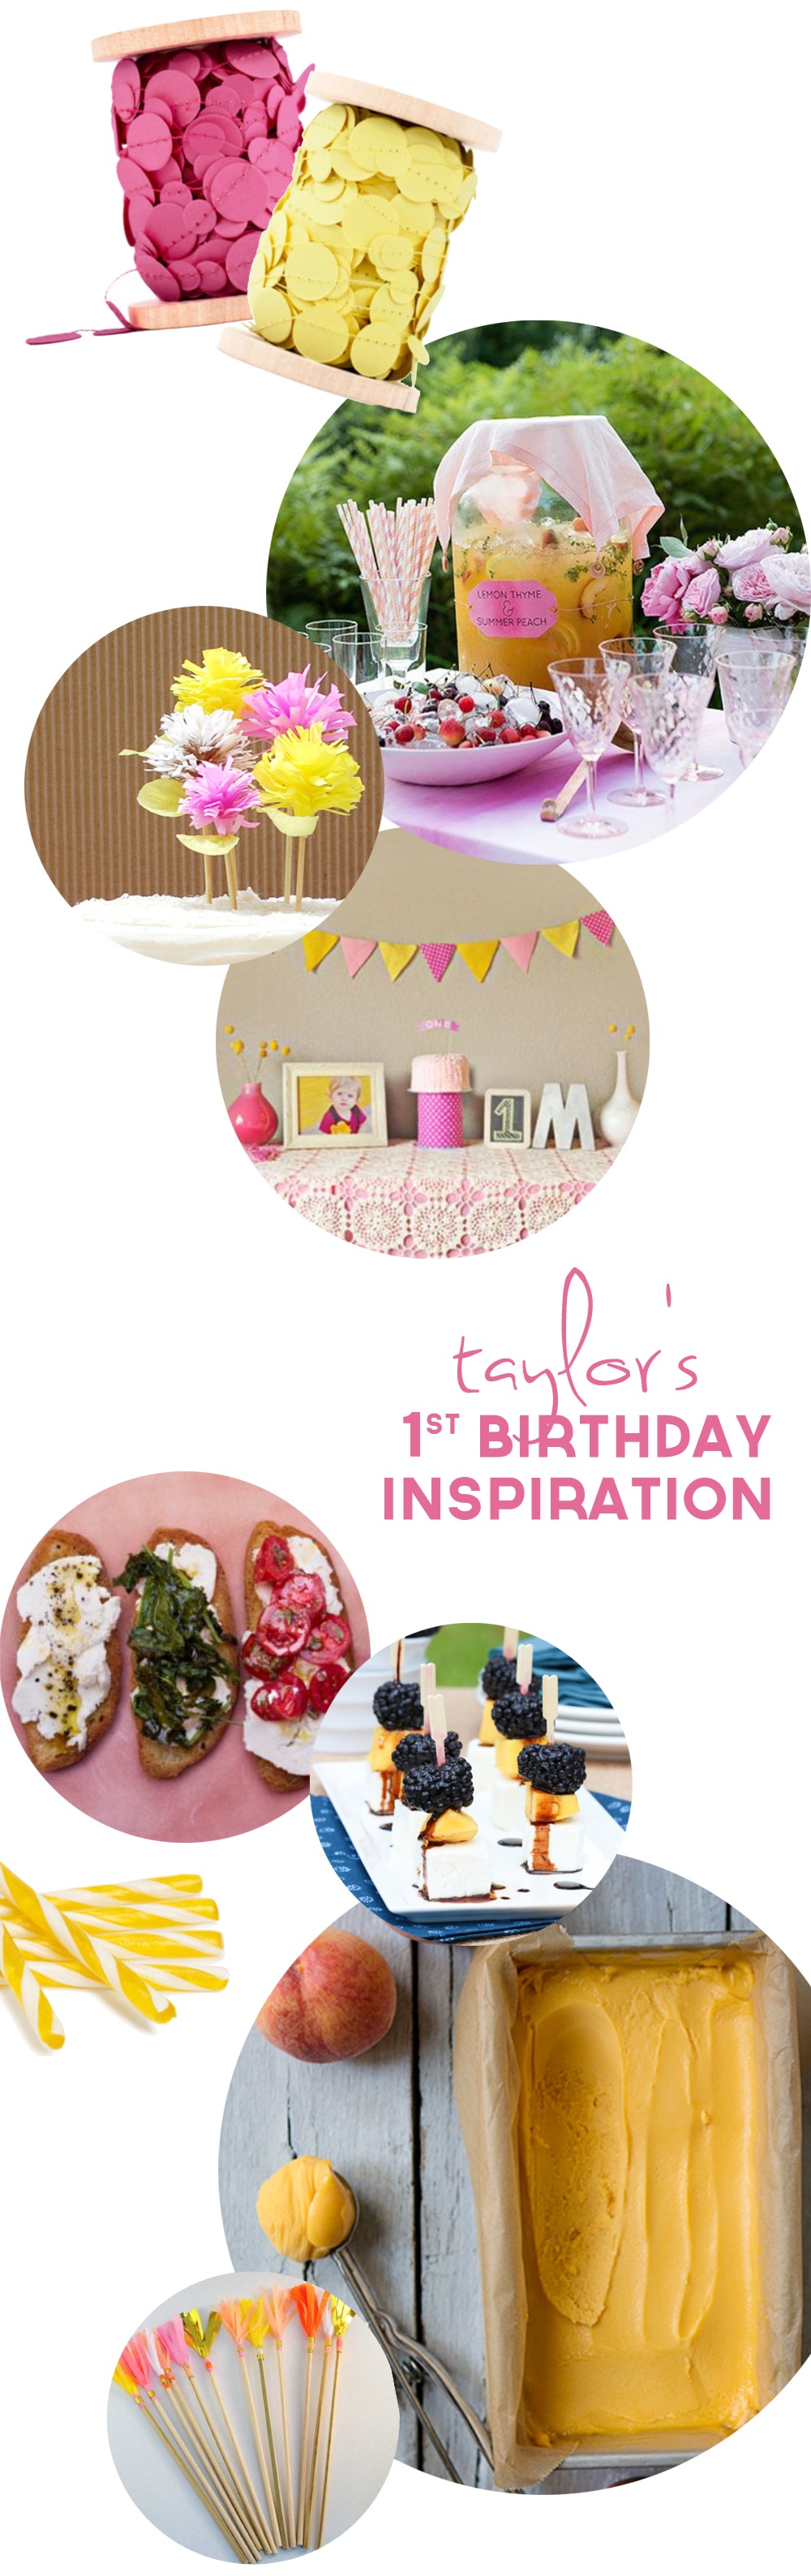 Taylor's 1st Birthday Party Inspiration | Yellow & Pink | PepperDesignBlog.com